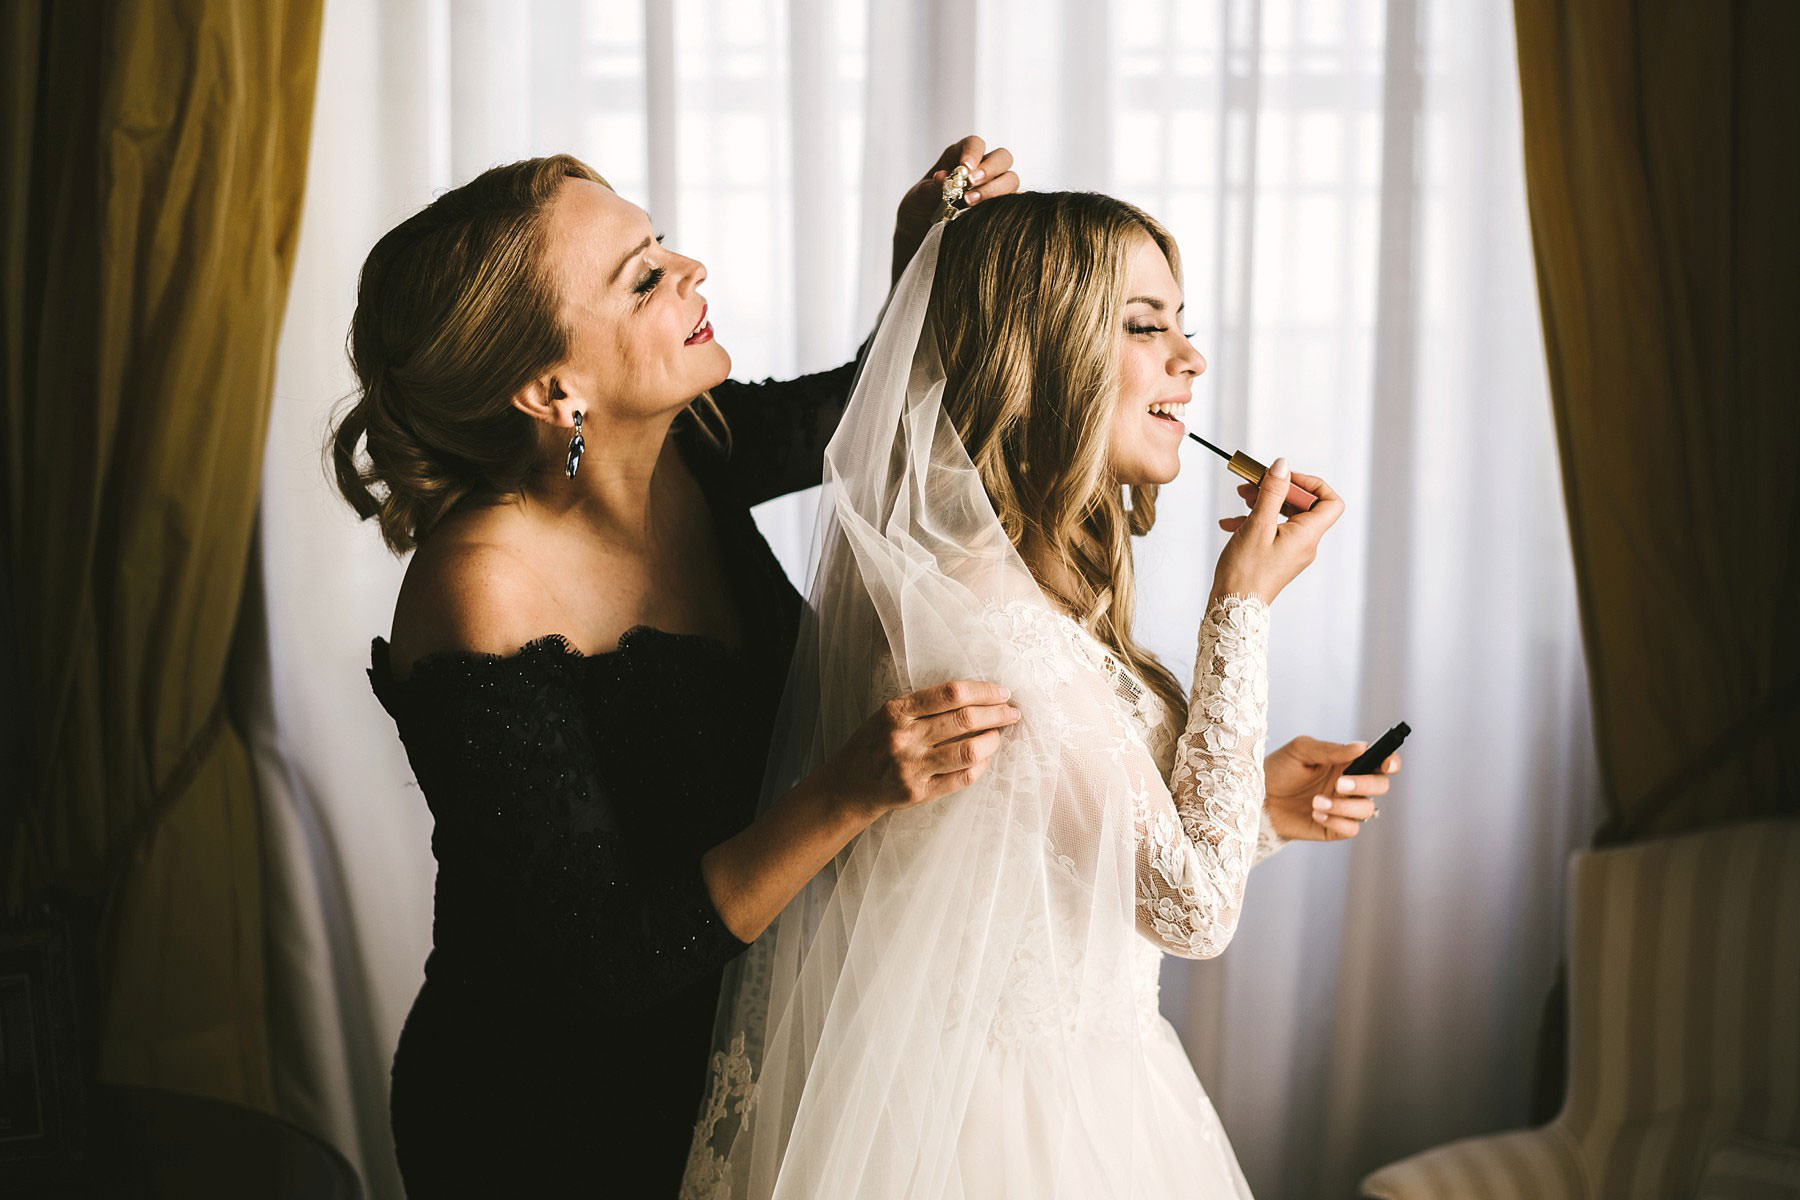 Mom and bride just get ready for the wedding ceremony. Destination wedding in Italy at Villa Mangiacane